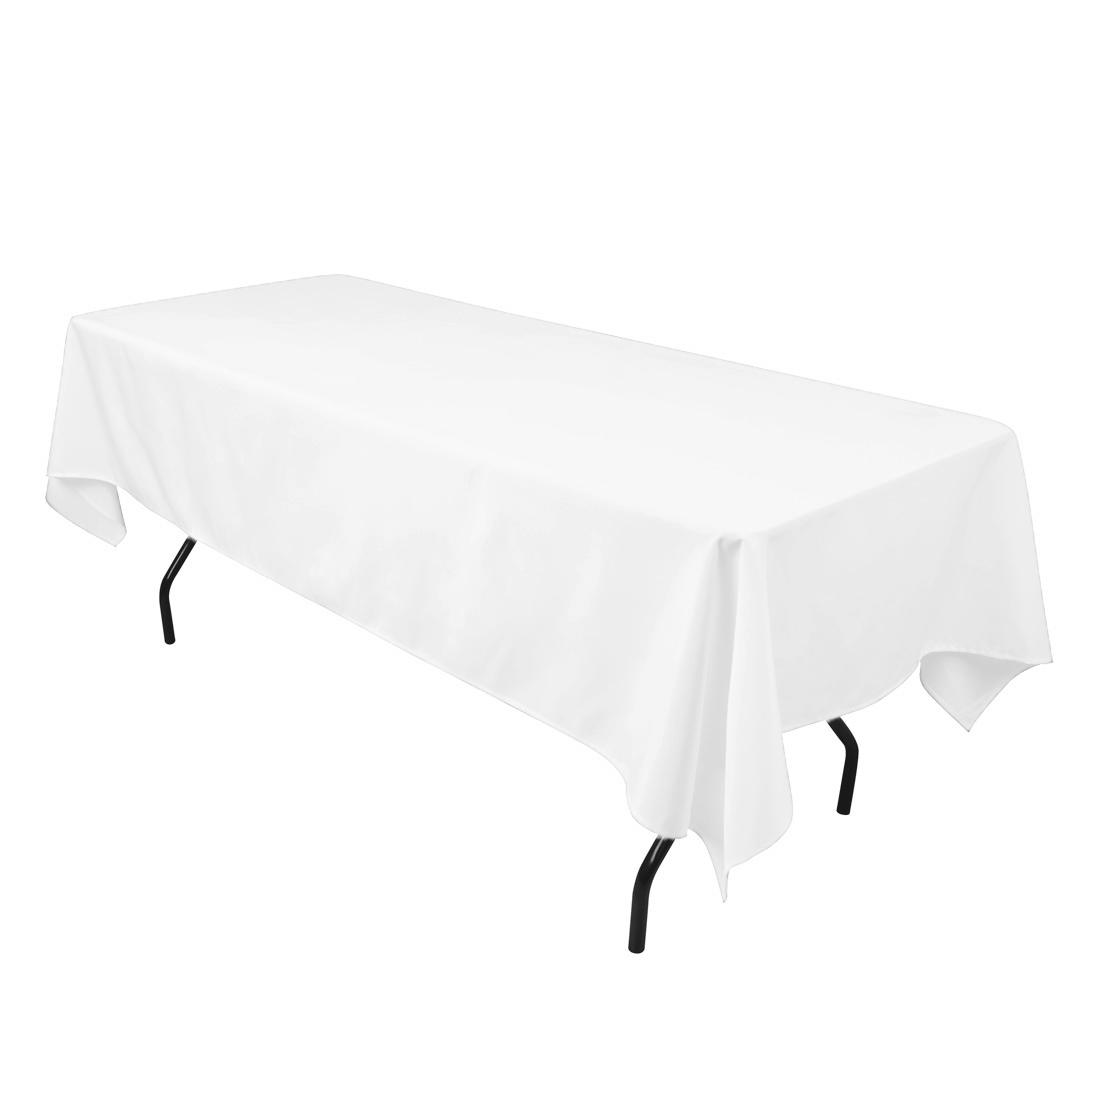 60 X 102 In. Rectangular Economy Polyester Tablecloth White